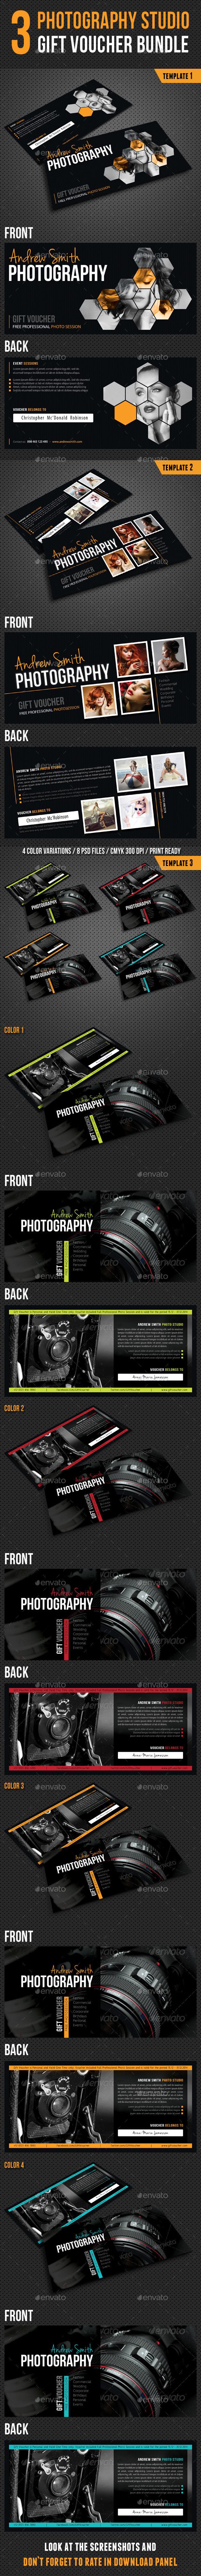 GraphicRiver 3 in 1 Photography Studio Gift Voucher Bundle 9804128